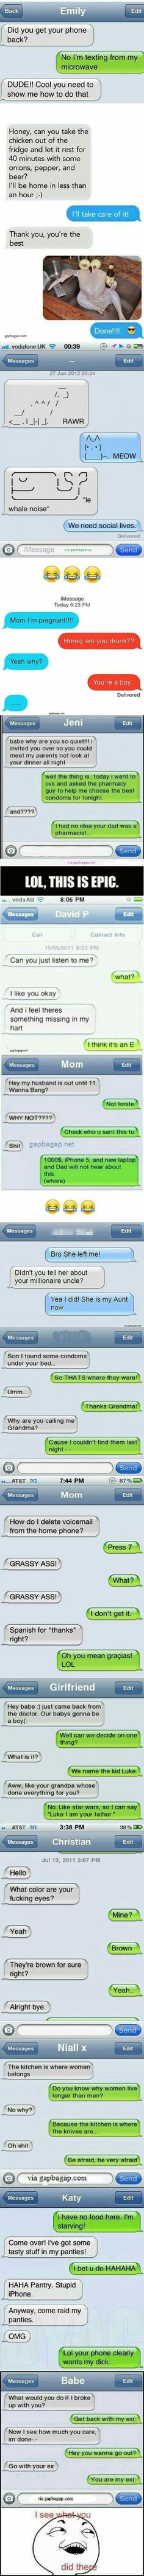 Top 15 Hilarious Text Messages